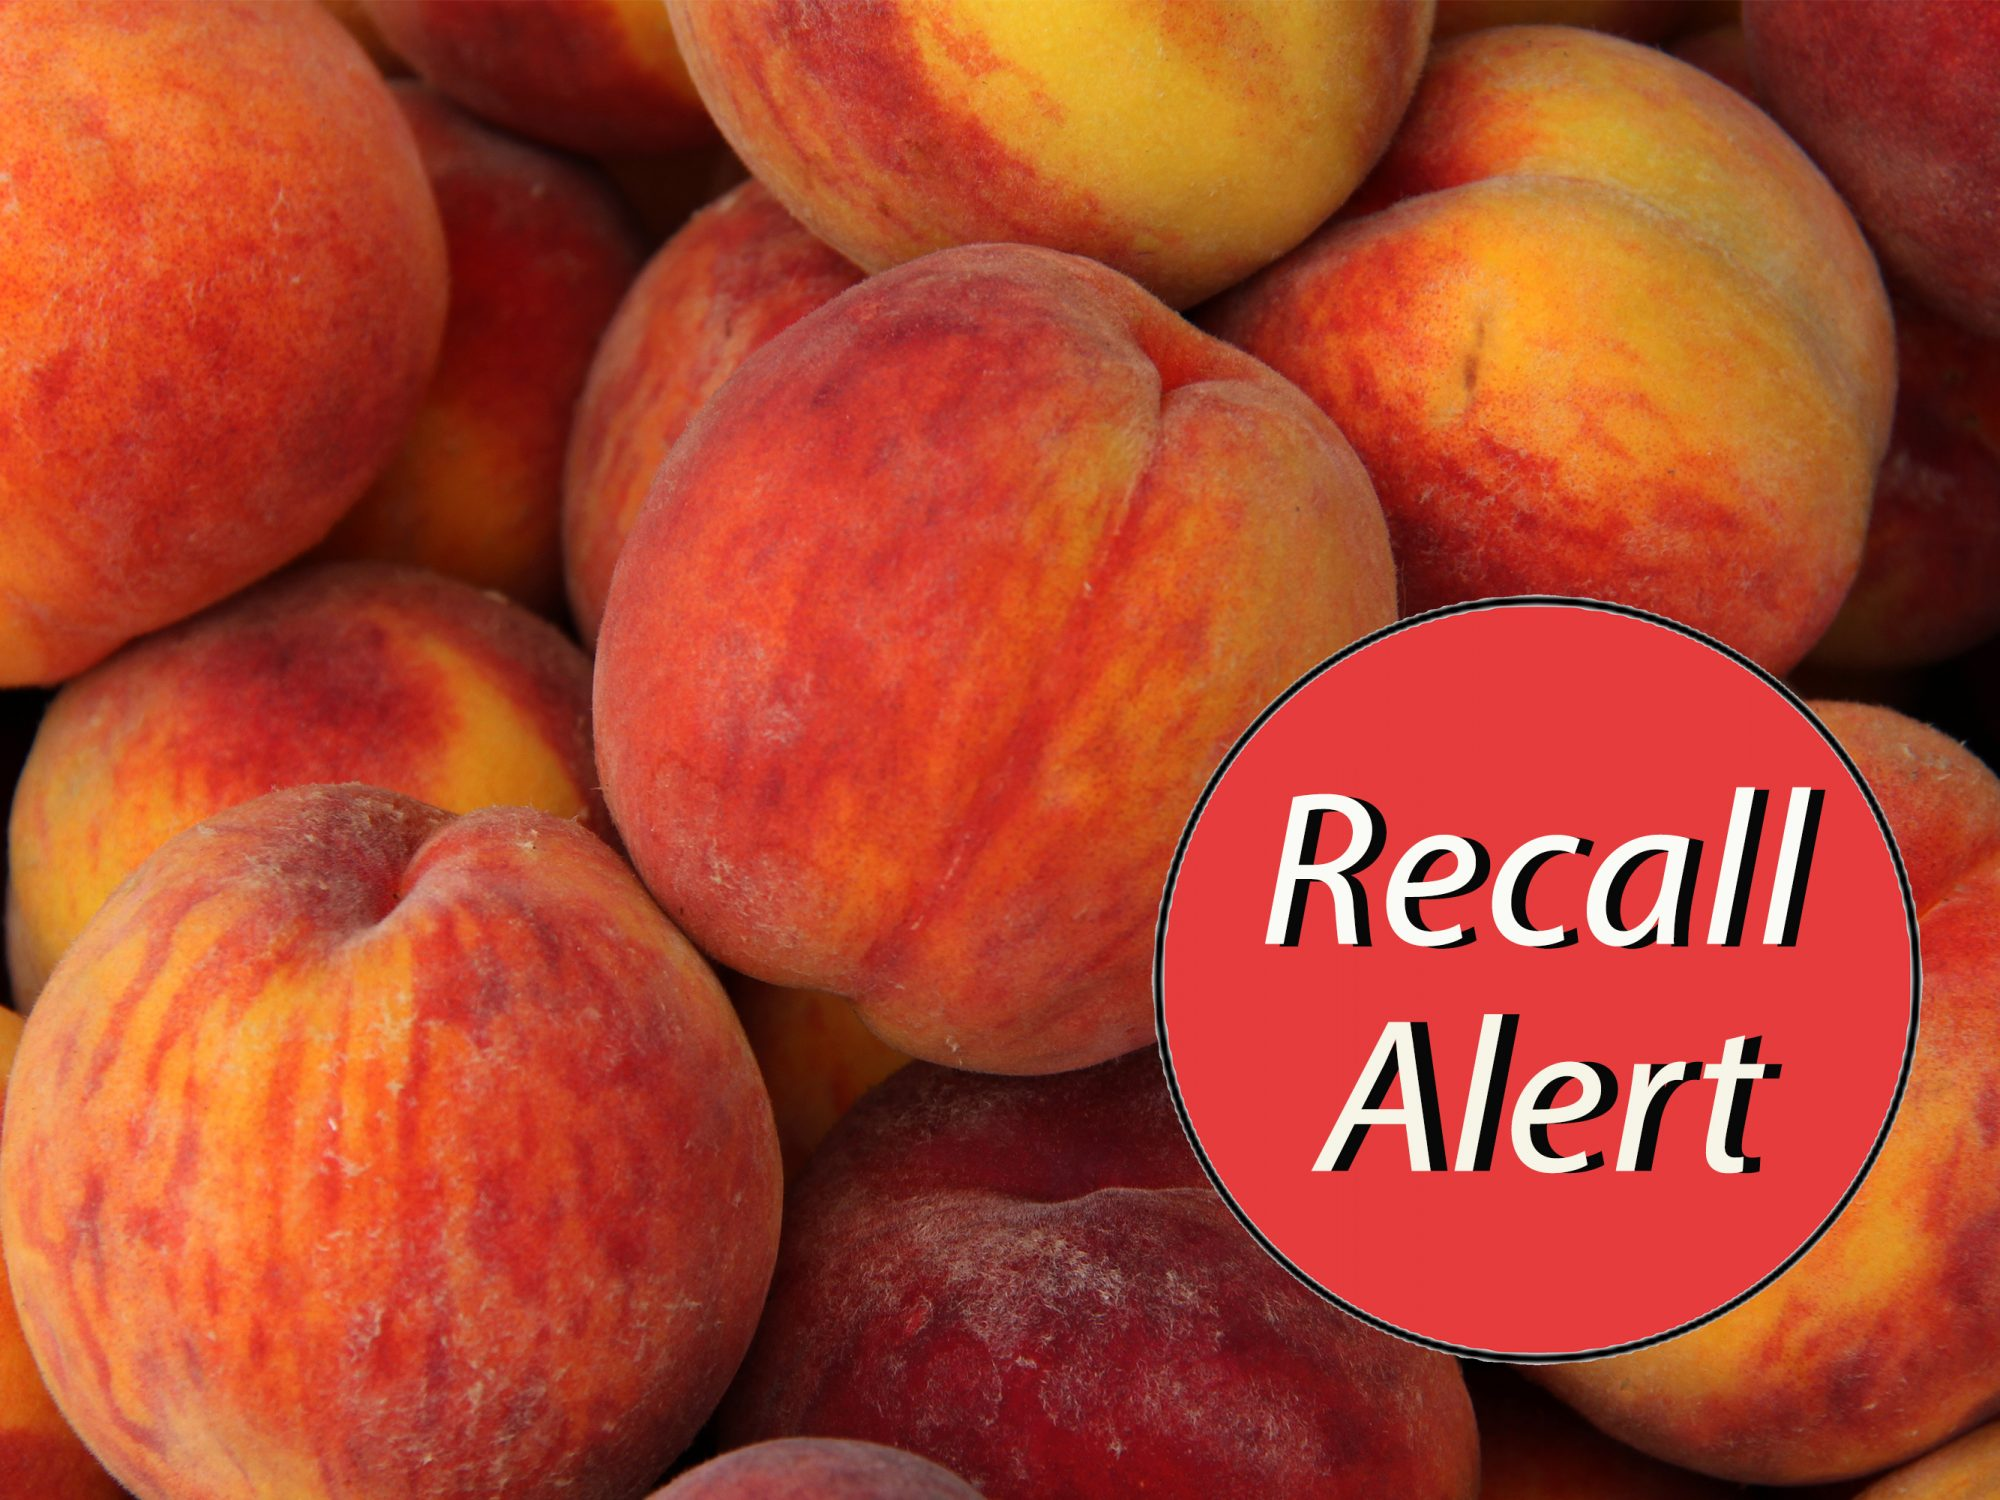 Peaches, Plums, and Nectarines Recalled Nationwide Due to Listeria Concerns